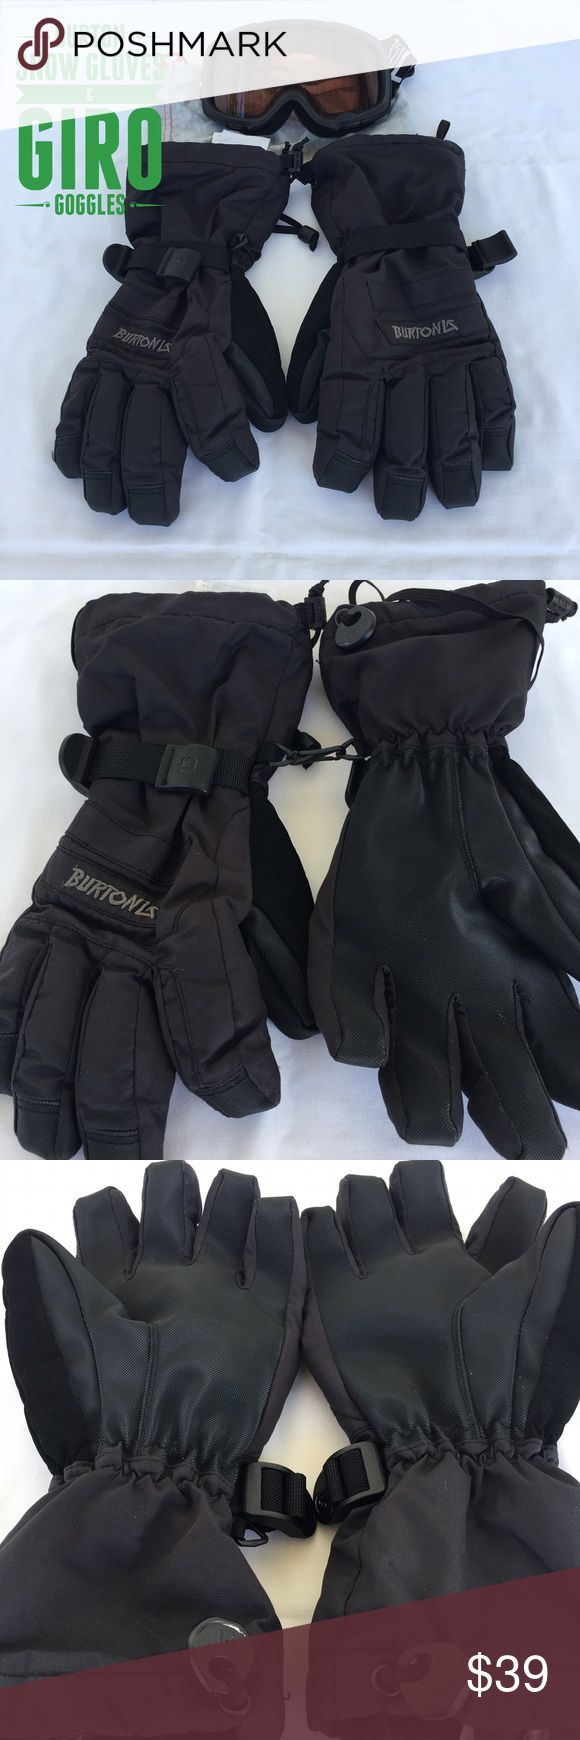 BURTON Snow Gloves & GIRO Goggles Black Burton Snow Gloves size Boys/Youth XL or Women's Small  Giro Snow Goggles has some minor scratches.  Barely noticeable (as seen on pics). Burton Accessories Gloves & Mittens